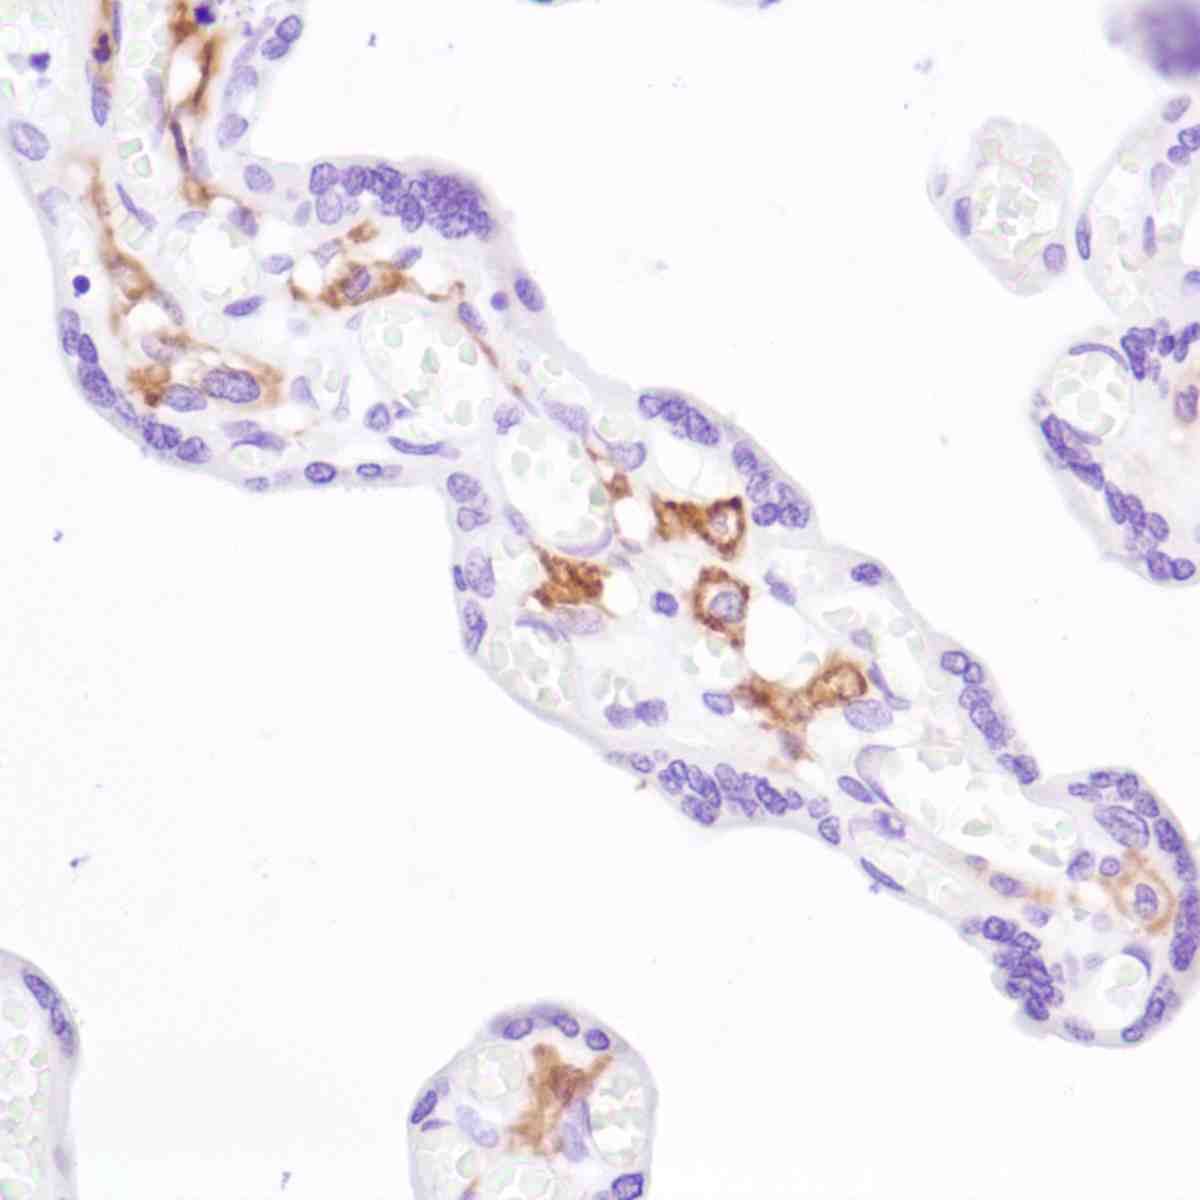 Human Placenta stained with anti-CD16a antibody